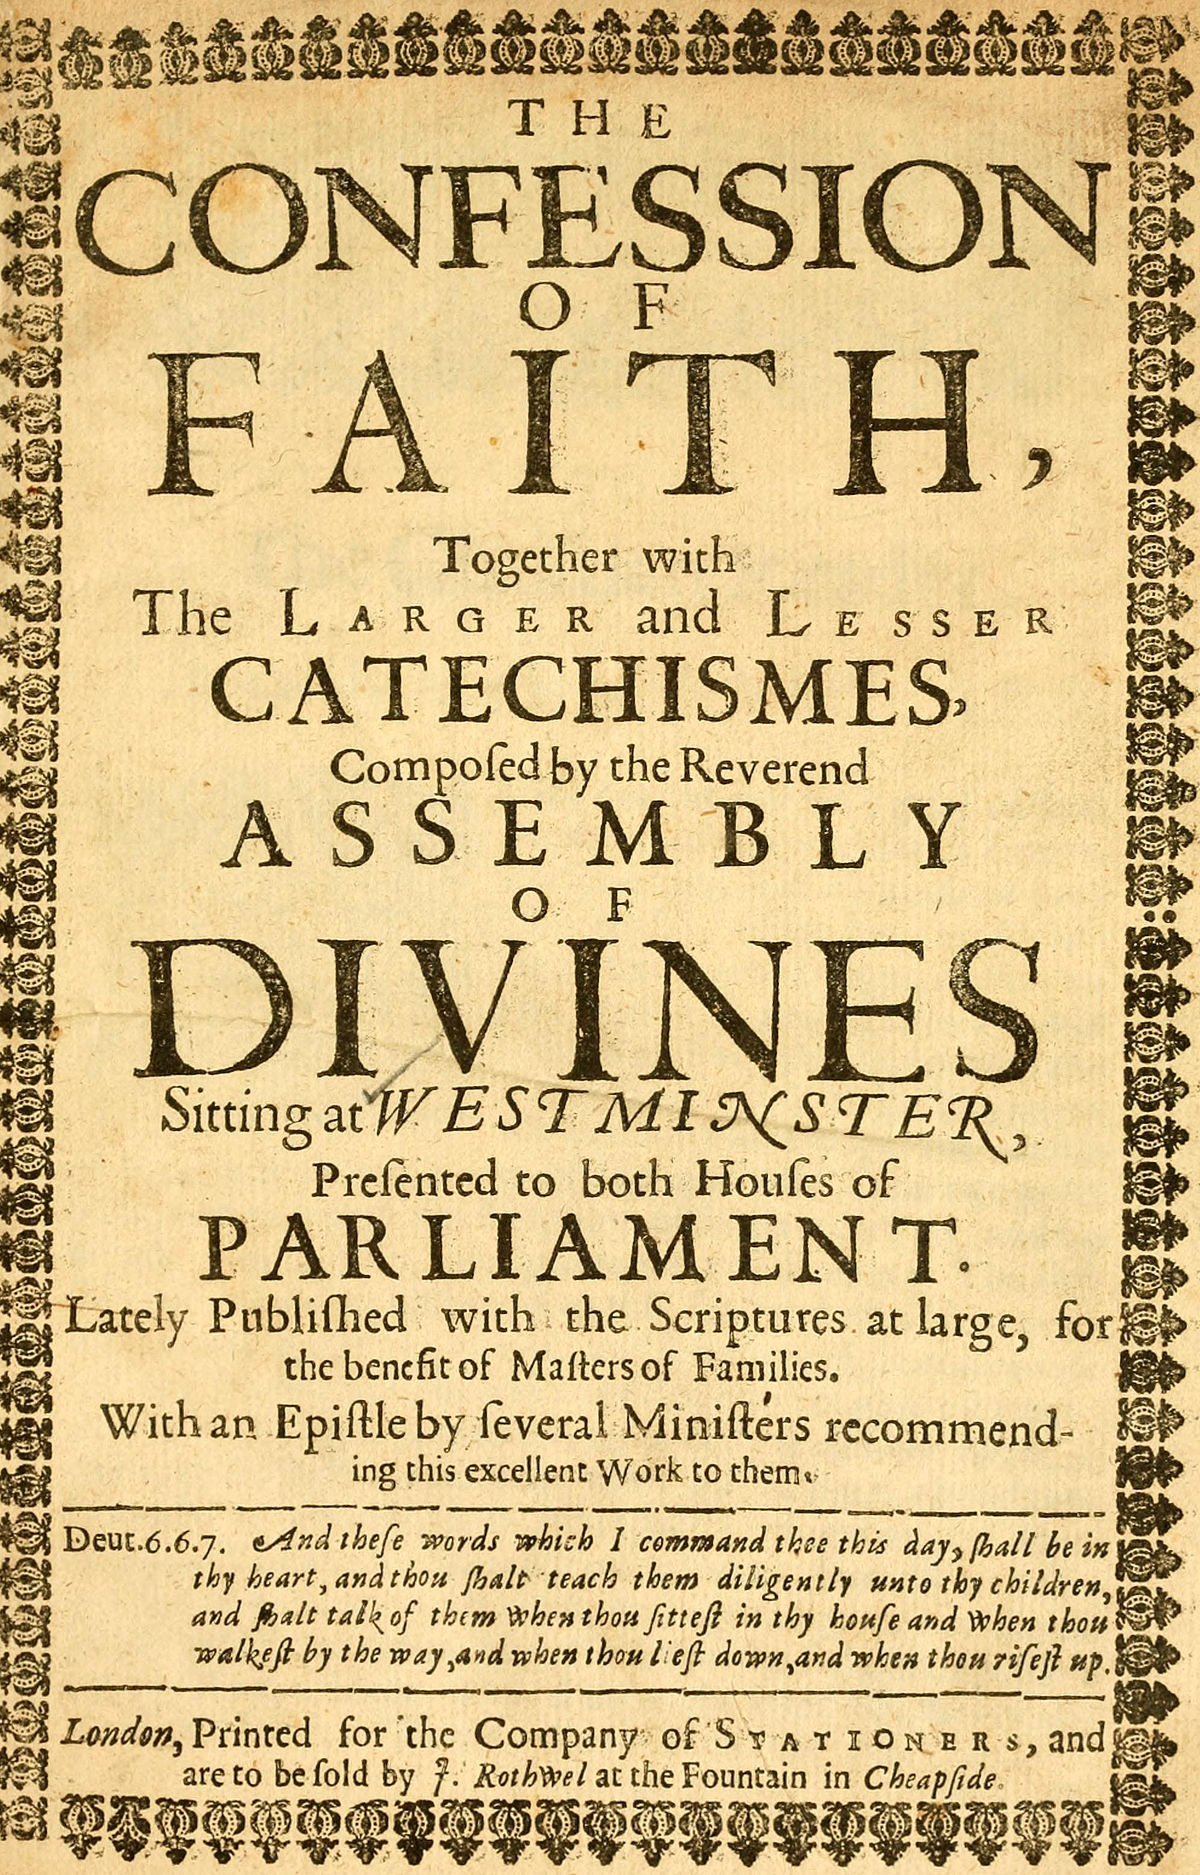 WHAT IS THE RIGHT WAY TO DEFEND THE KING JAMES BIBLE AS THE